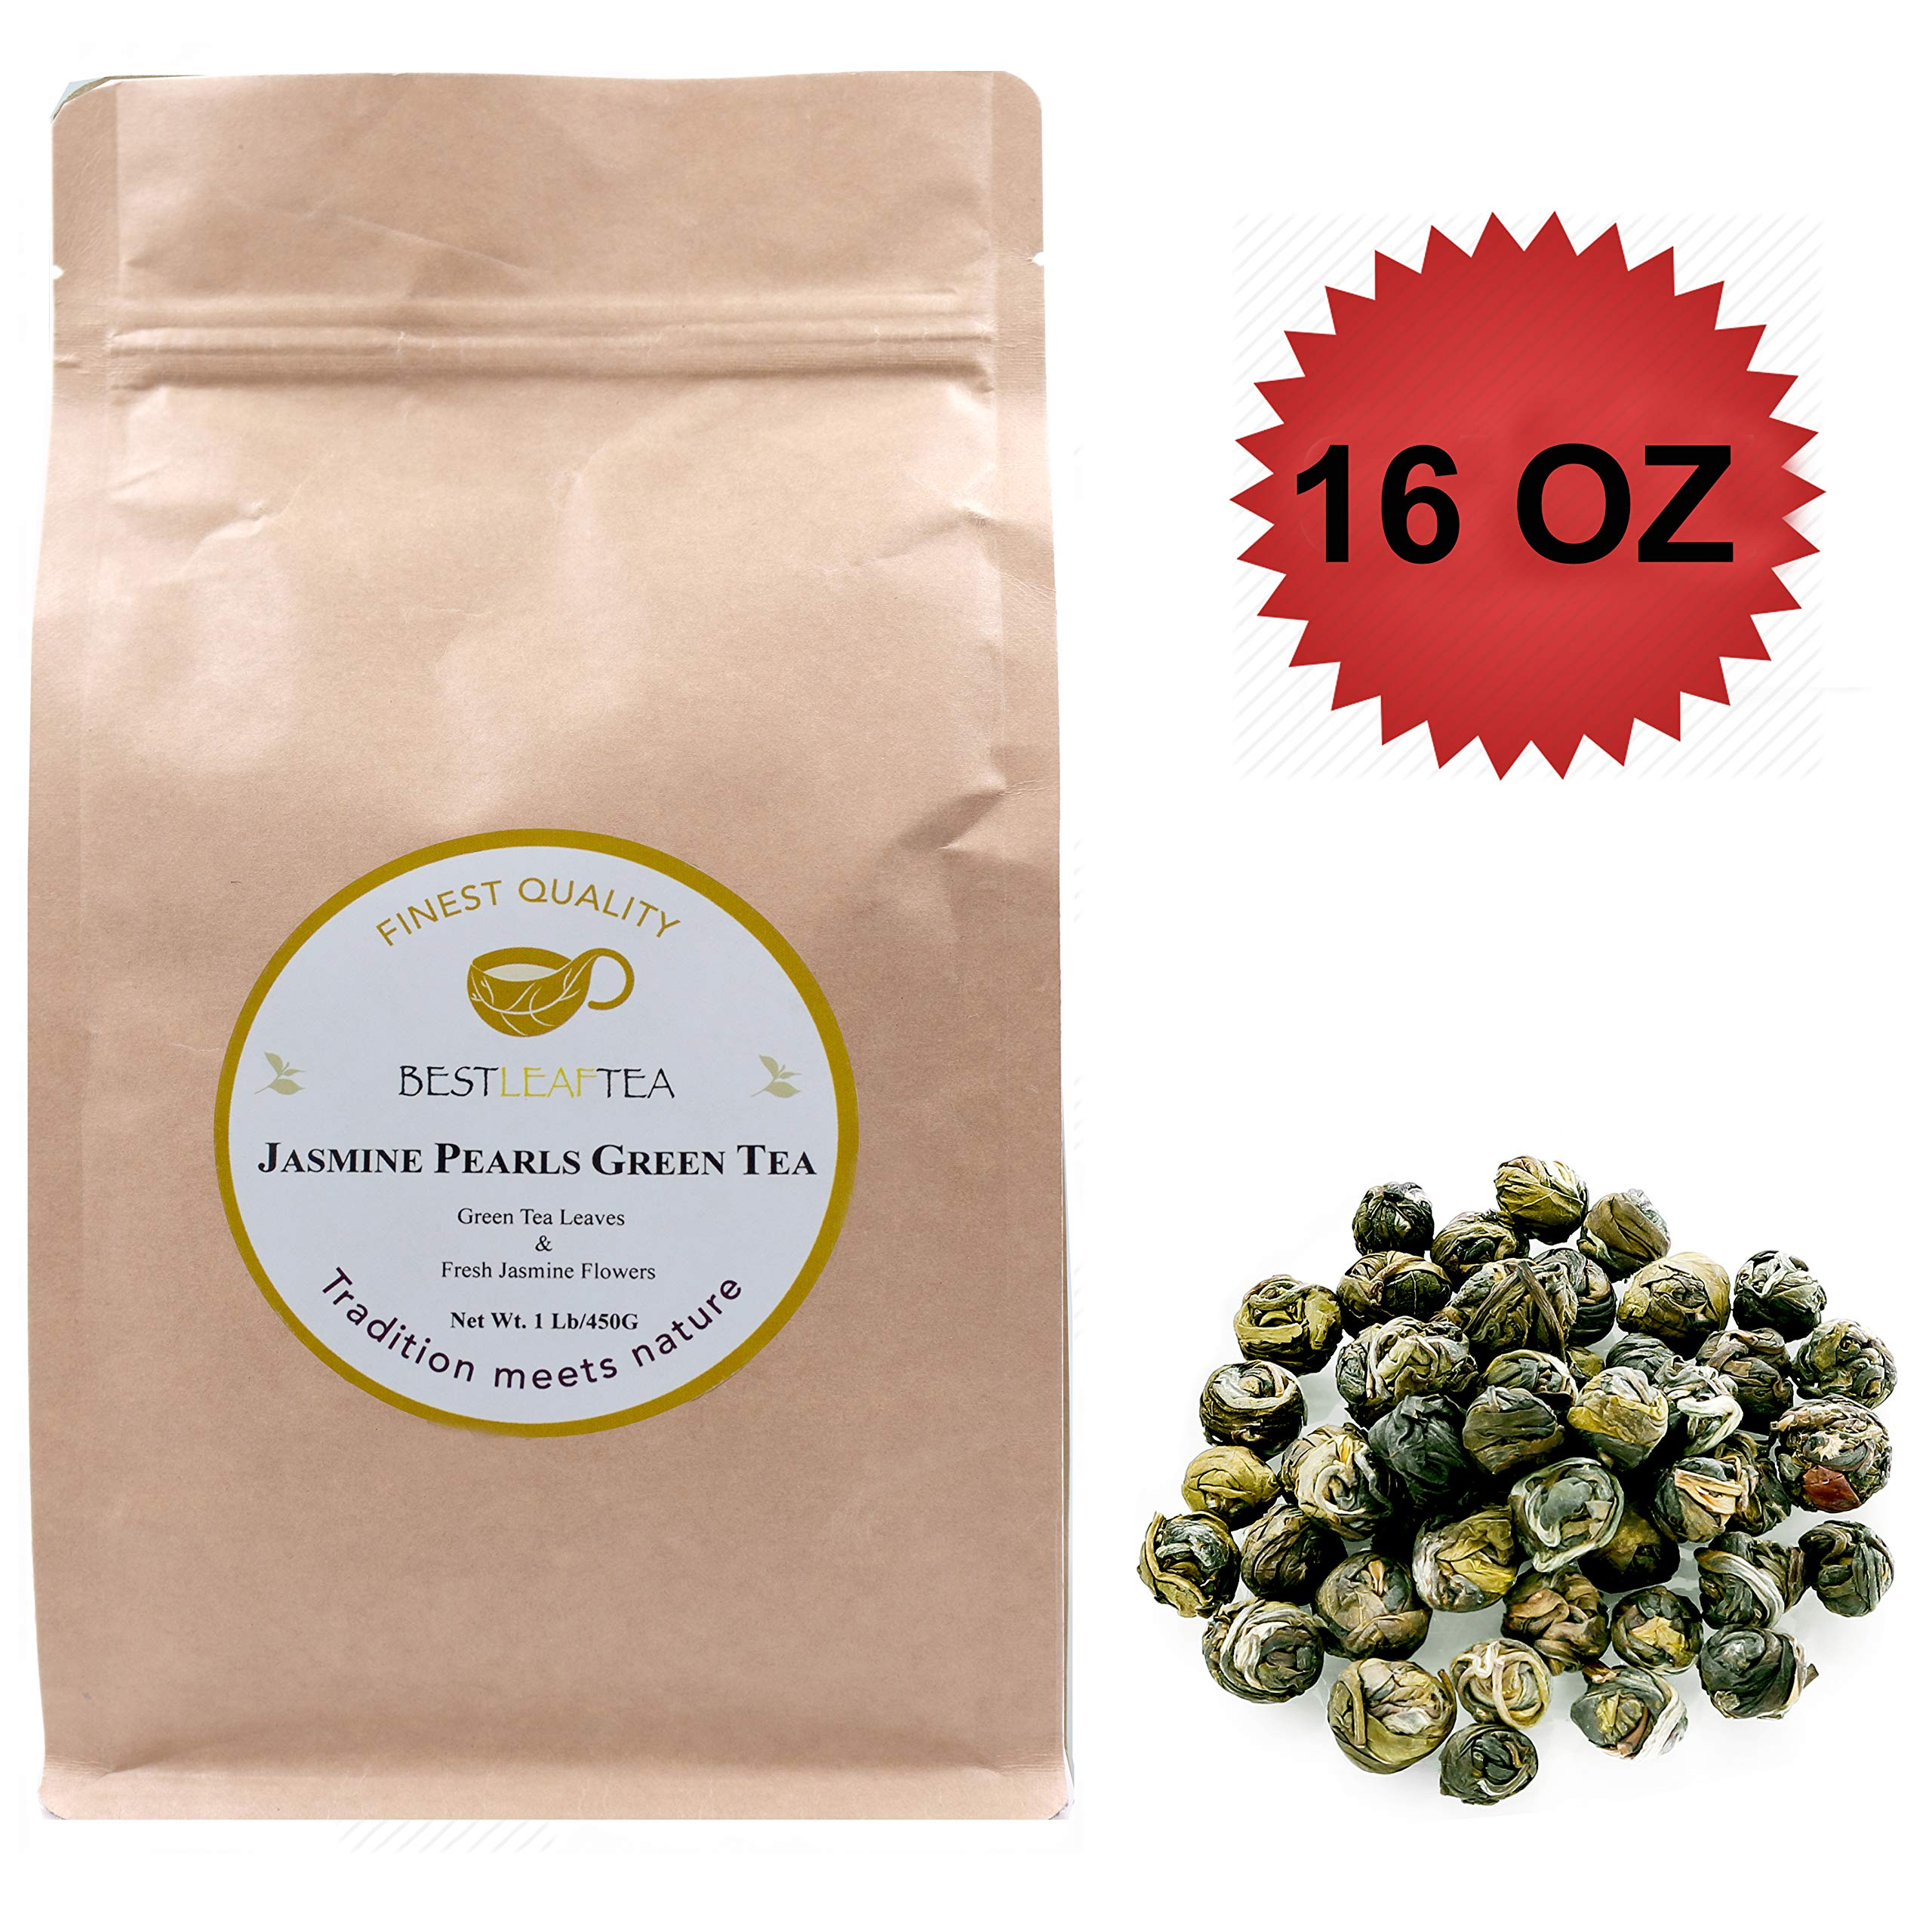 BESTLEAFTEA- 2019 New Jasmine Pearls Green Tea/Dragon Pearls Green Tea 16oz/450g by BESTLEAFTEA